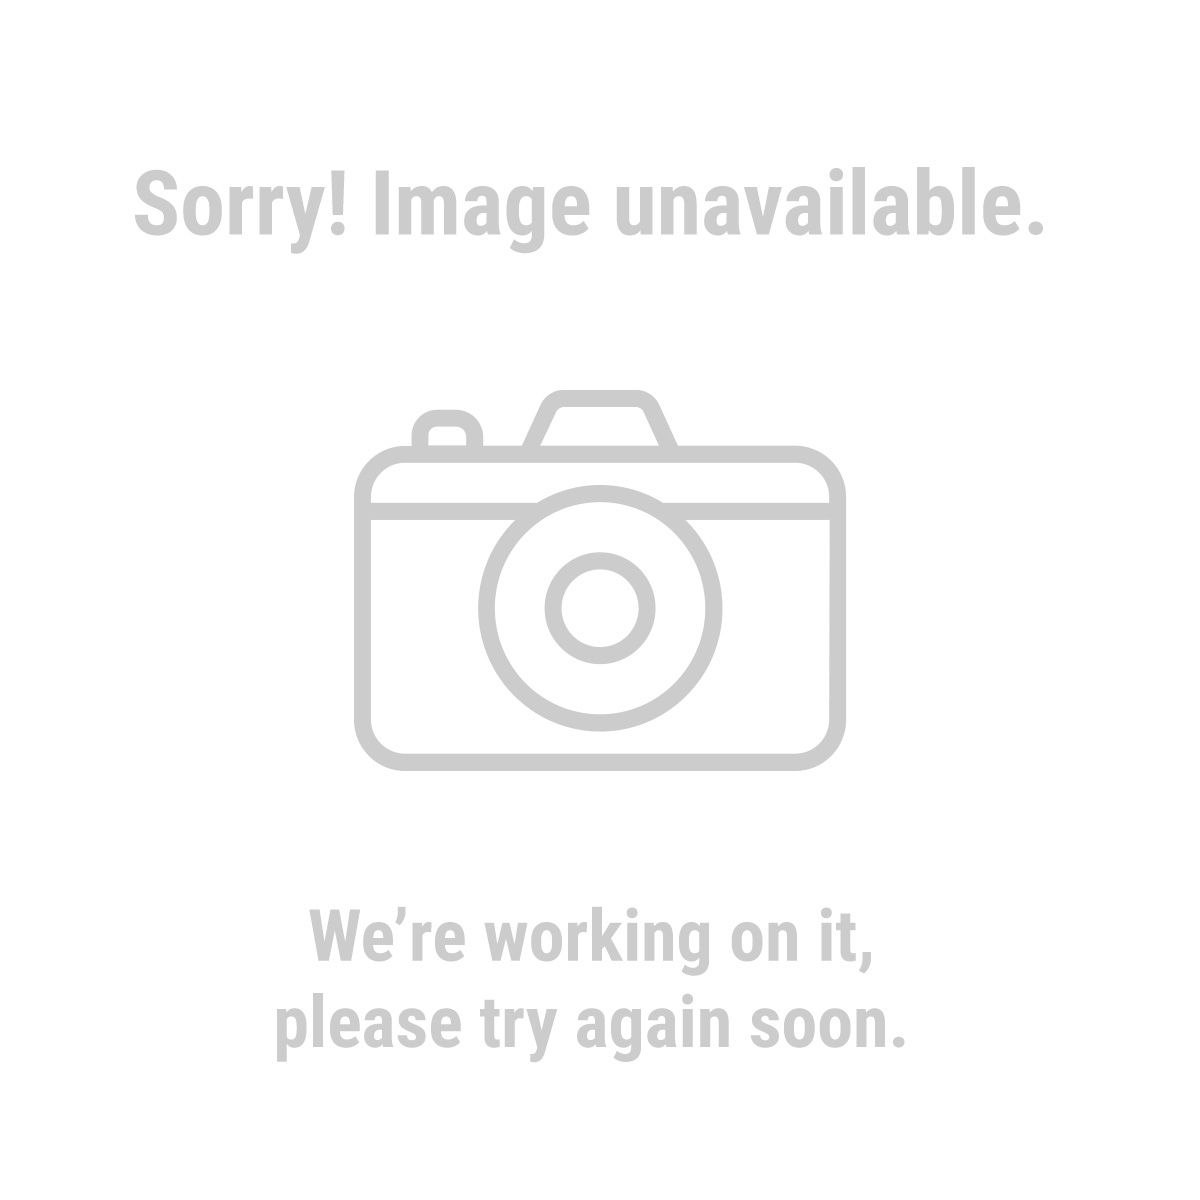 Pacific Hydrostar® 68393 620 GPH Submersible Fountain Pump